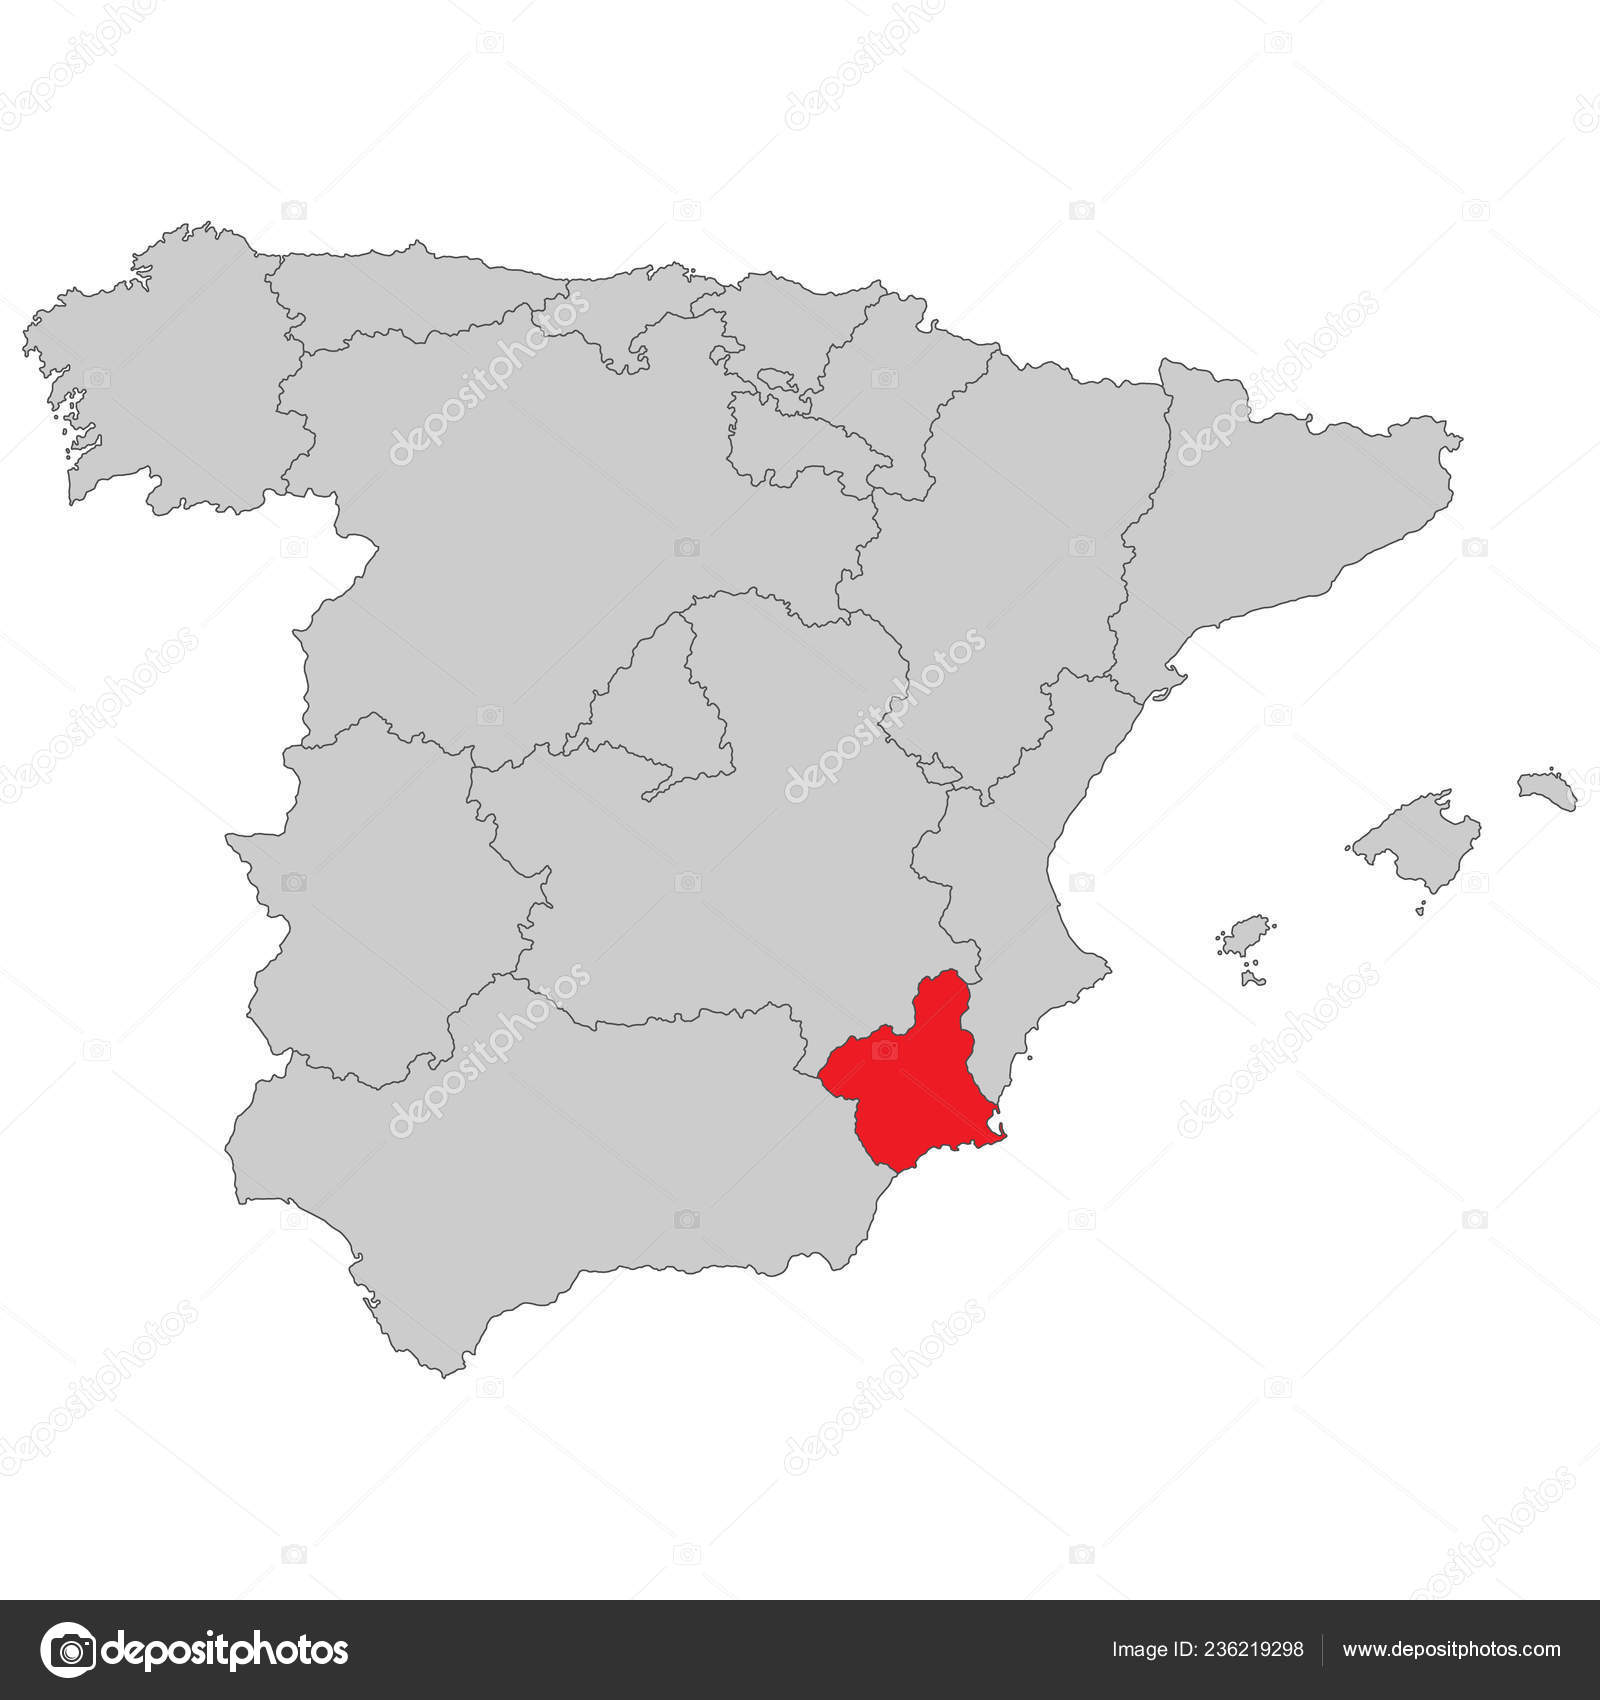 Map Of Spain Murcia.Spain Map Spain Murcia High Detailed Stock Vector C Ii